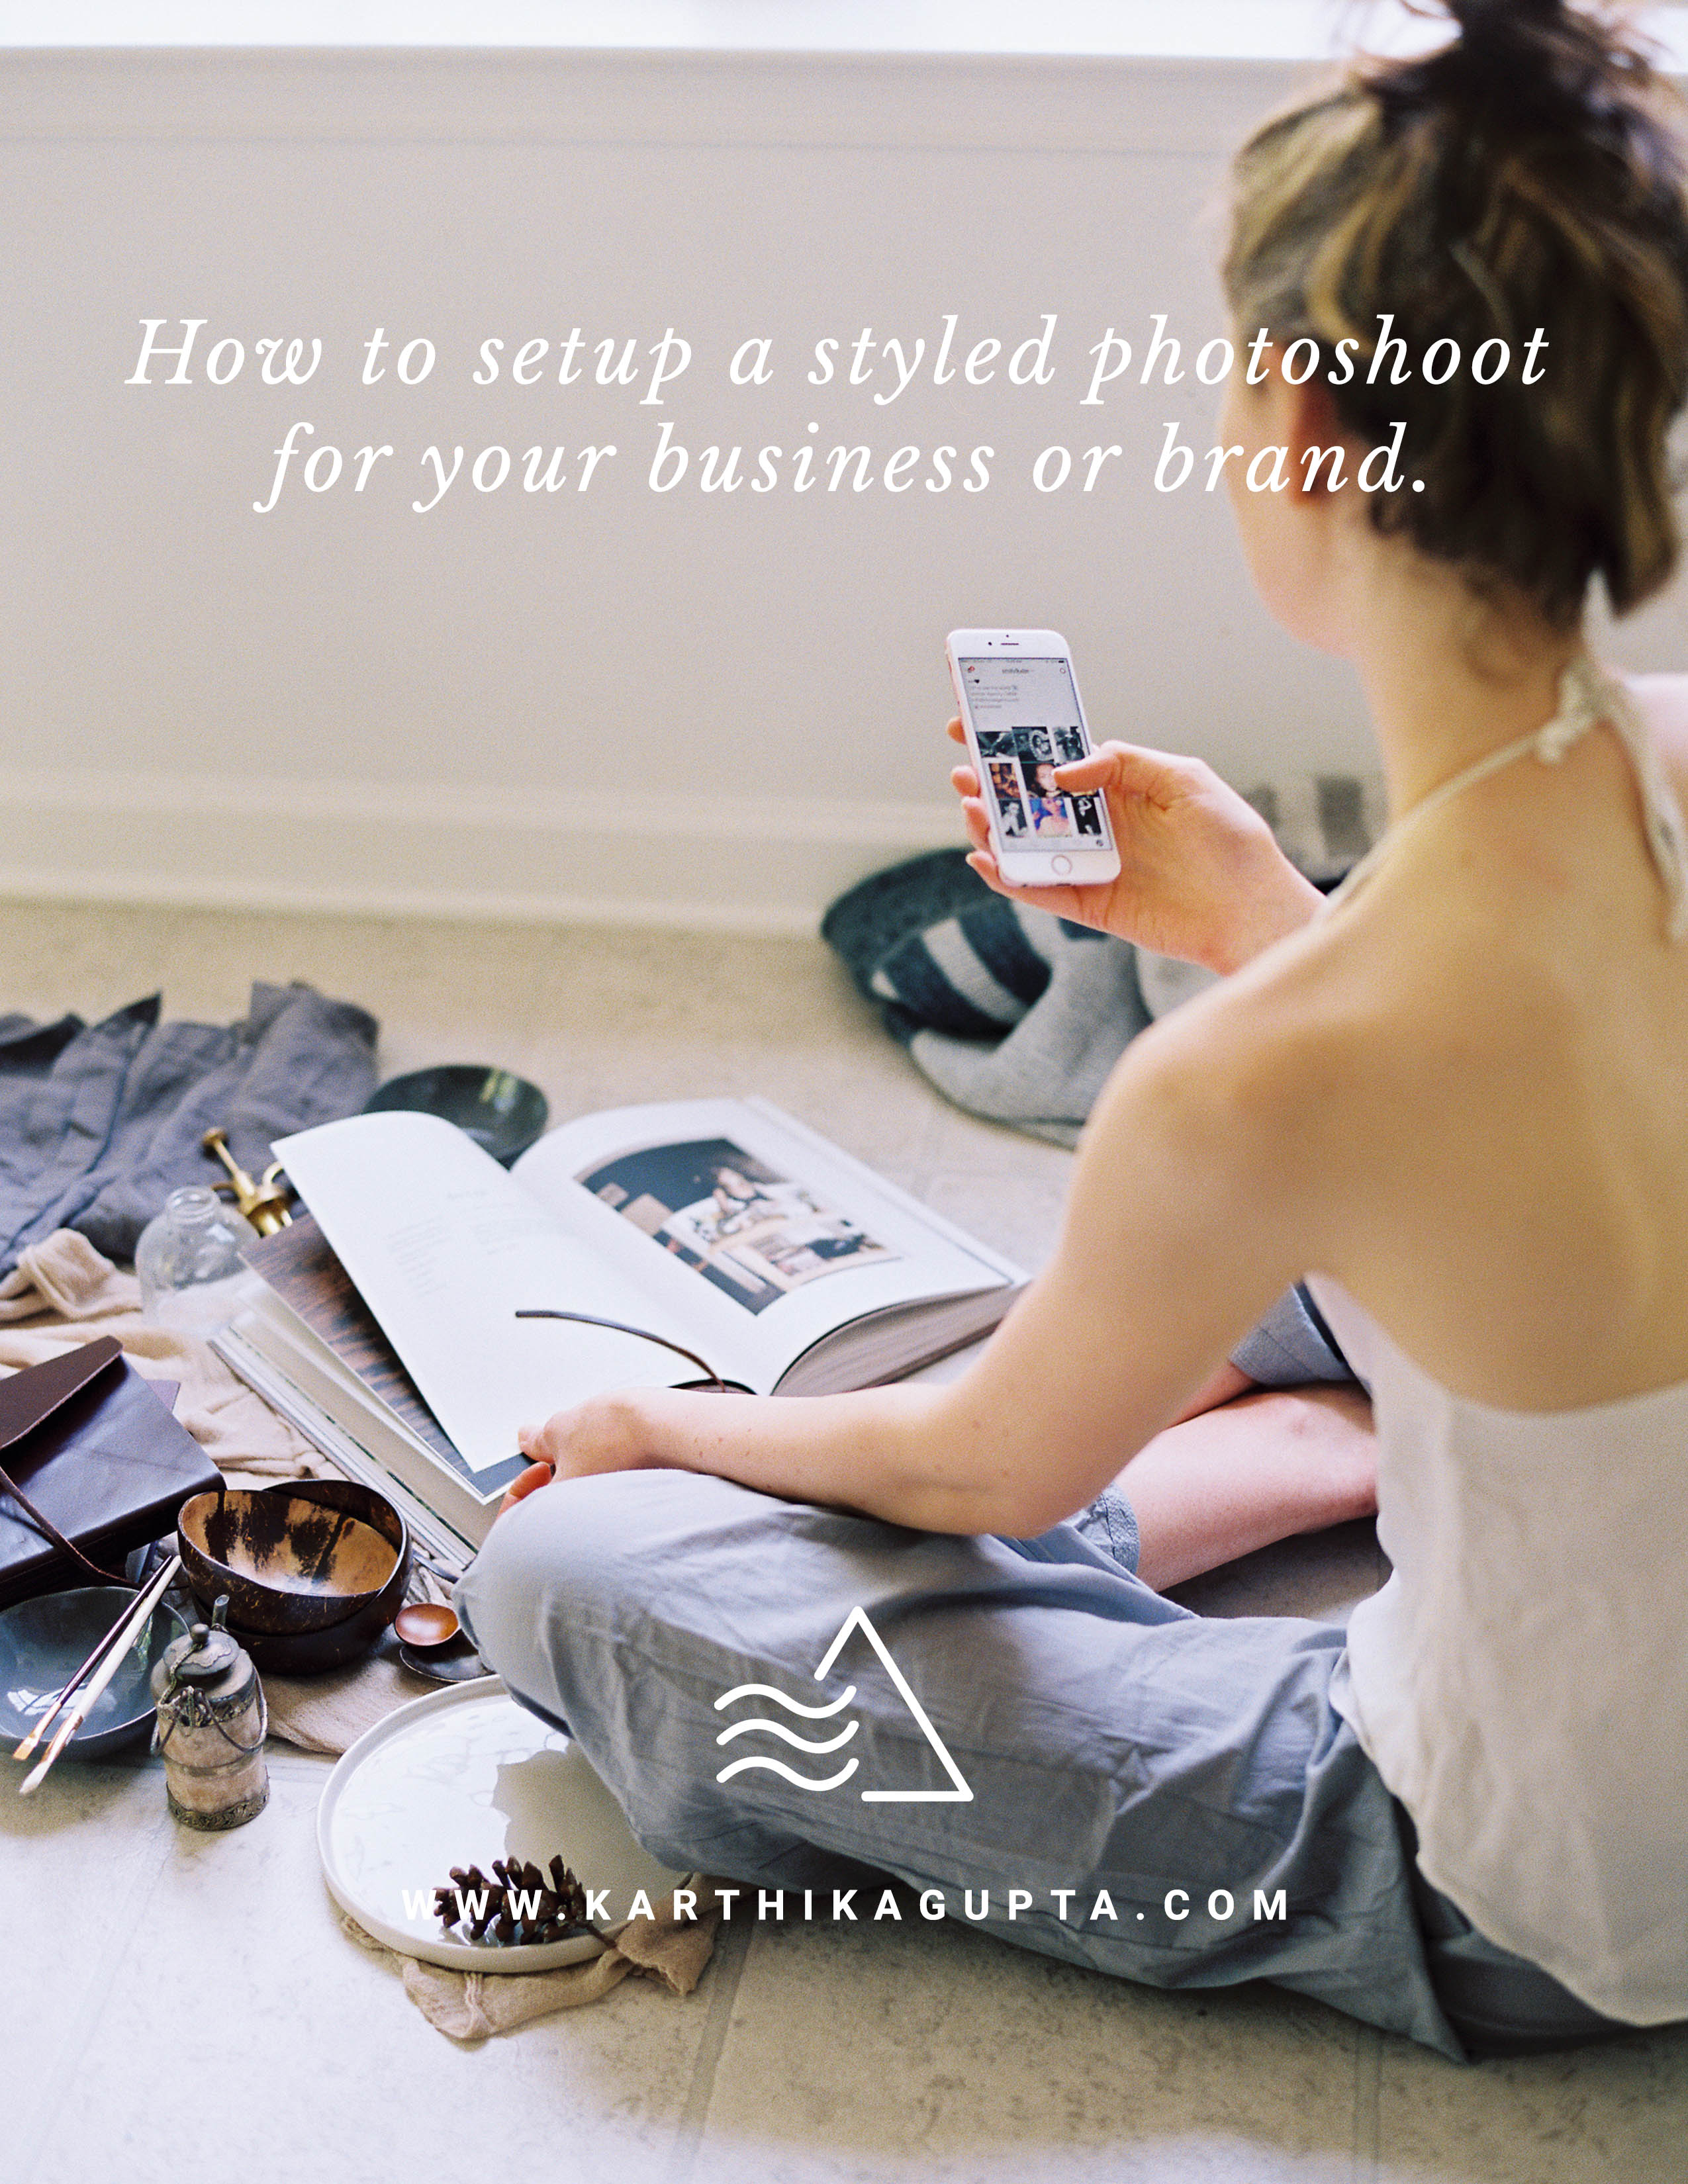 How to setup a styled photoshoot for your business or brand